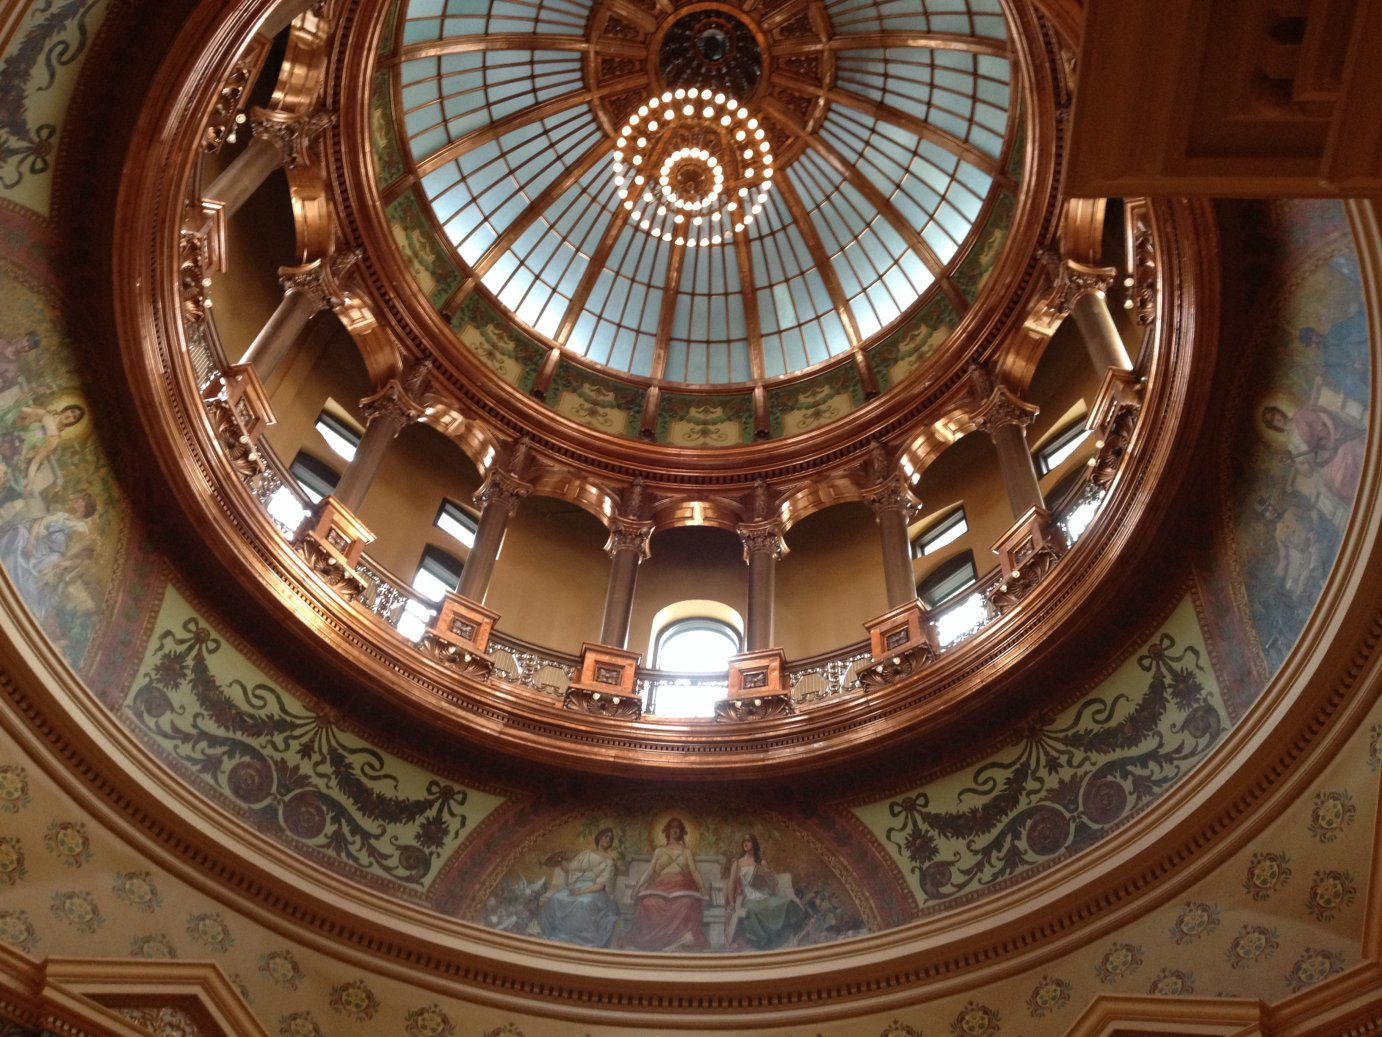 Inside the rotunda and under the dome of the Kansas Statehouse (Photo by J. Schafer)